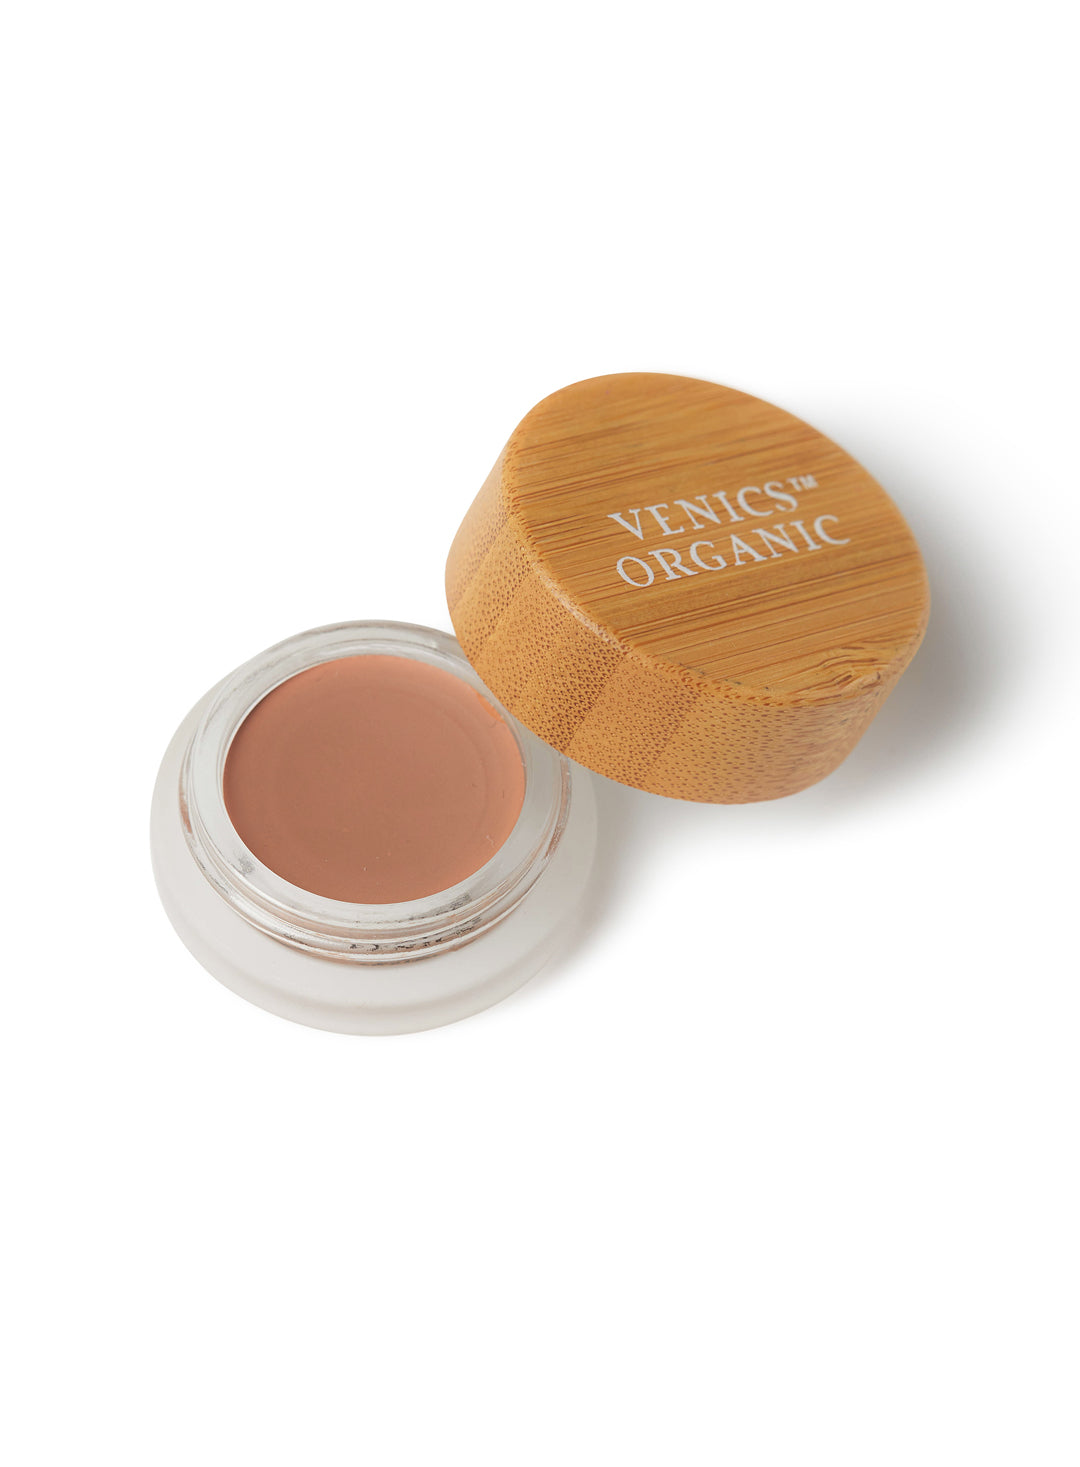 Phuket - Cupuacu Butter Dream Blend Bronzer™ - VENICS